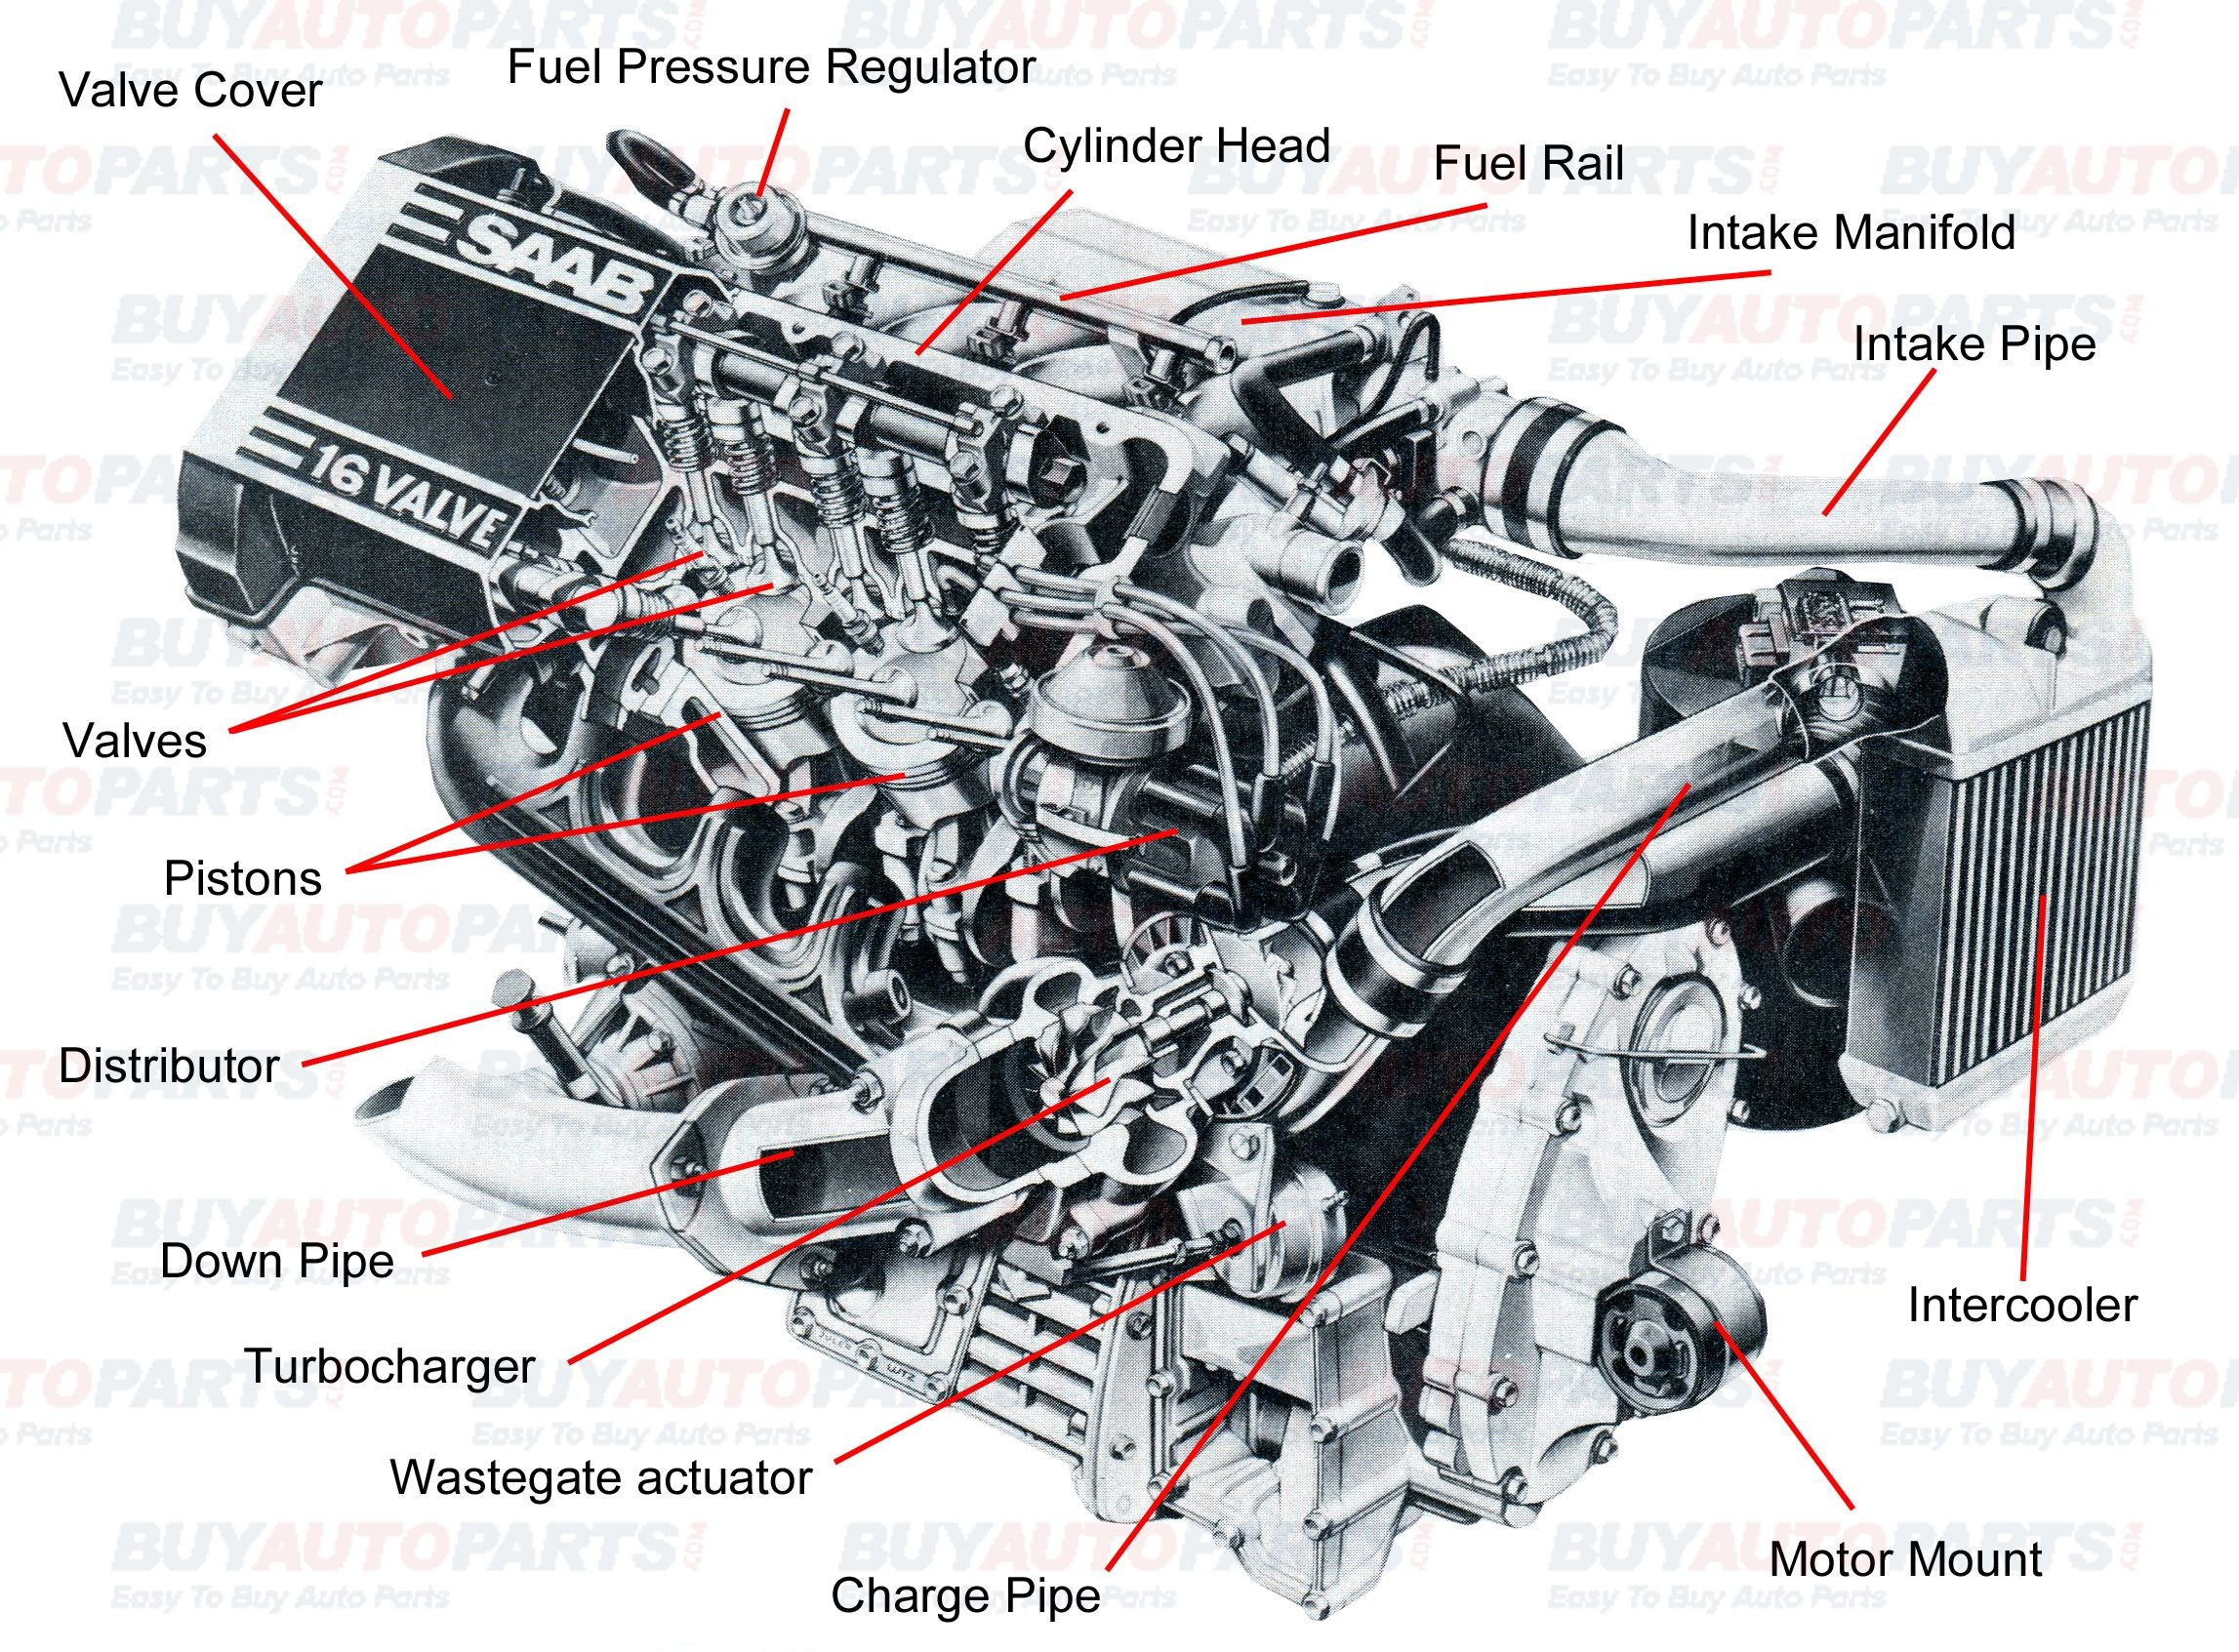 Ohv Engine Diagram Pin by Jimmiejanet Testellamwfz On What Does An Engine with Turbo Of Ohv Engine Diagram